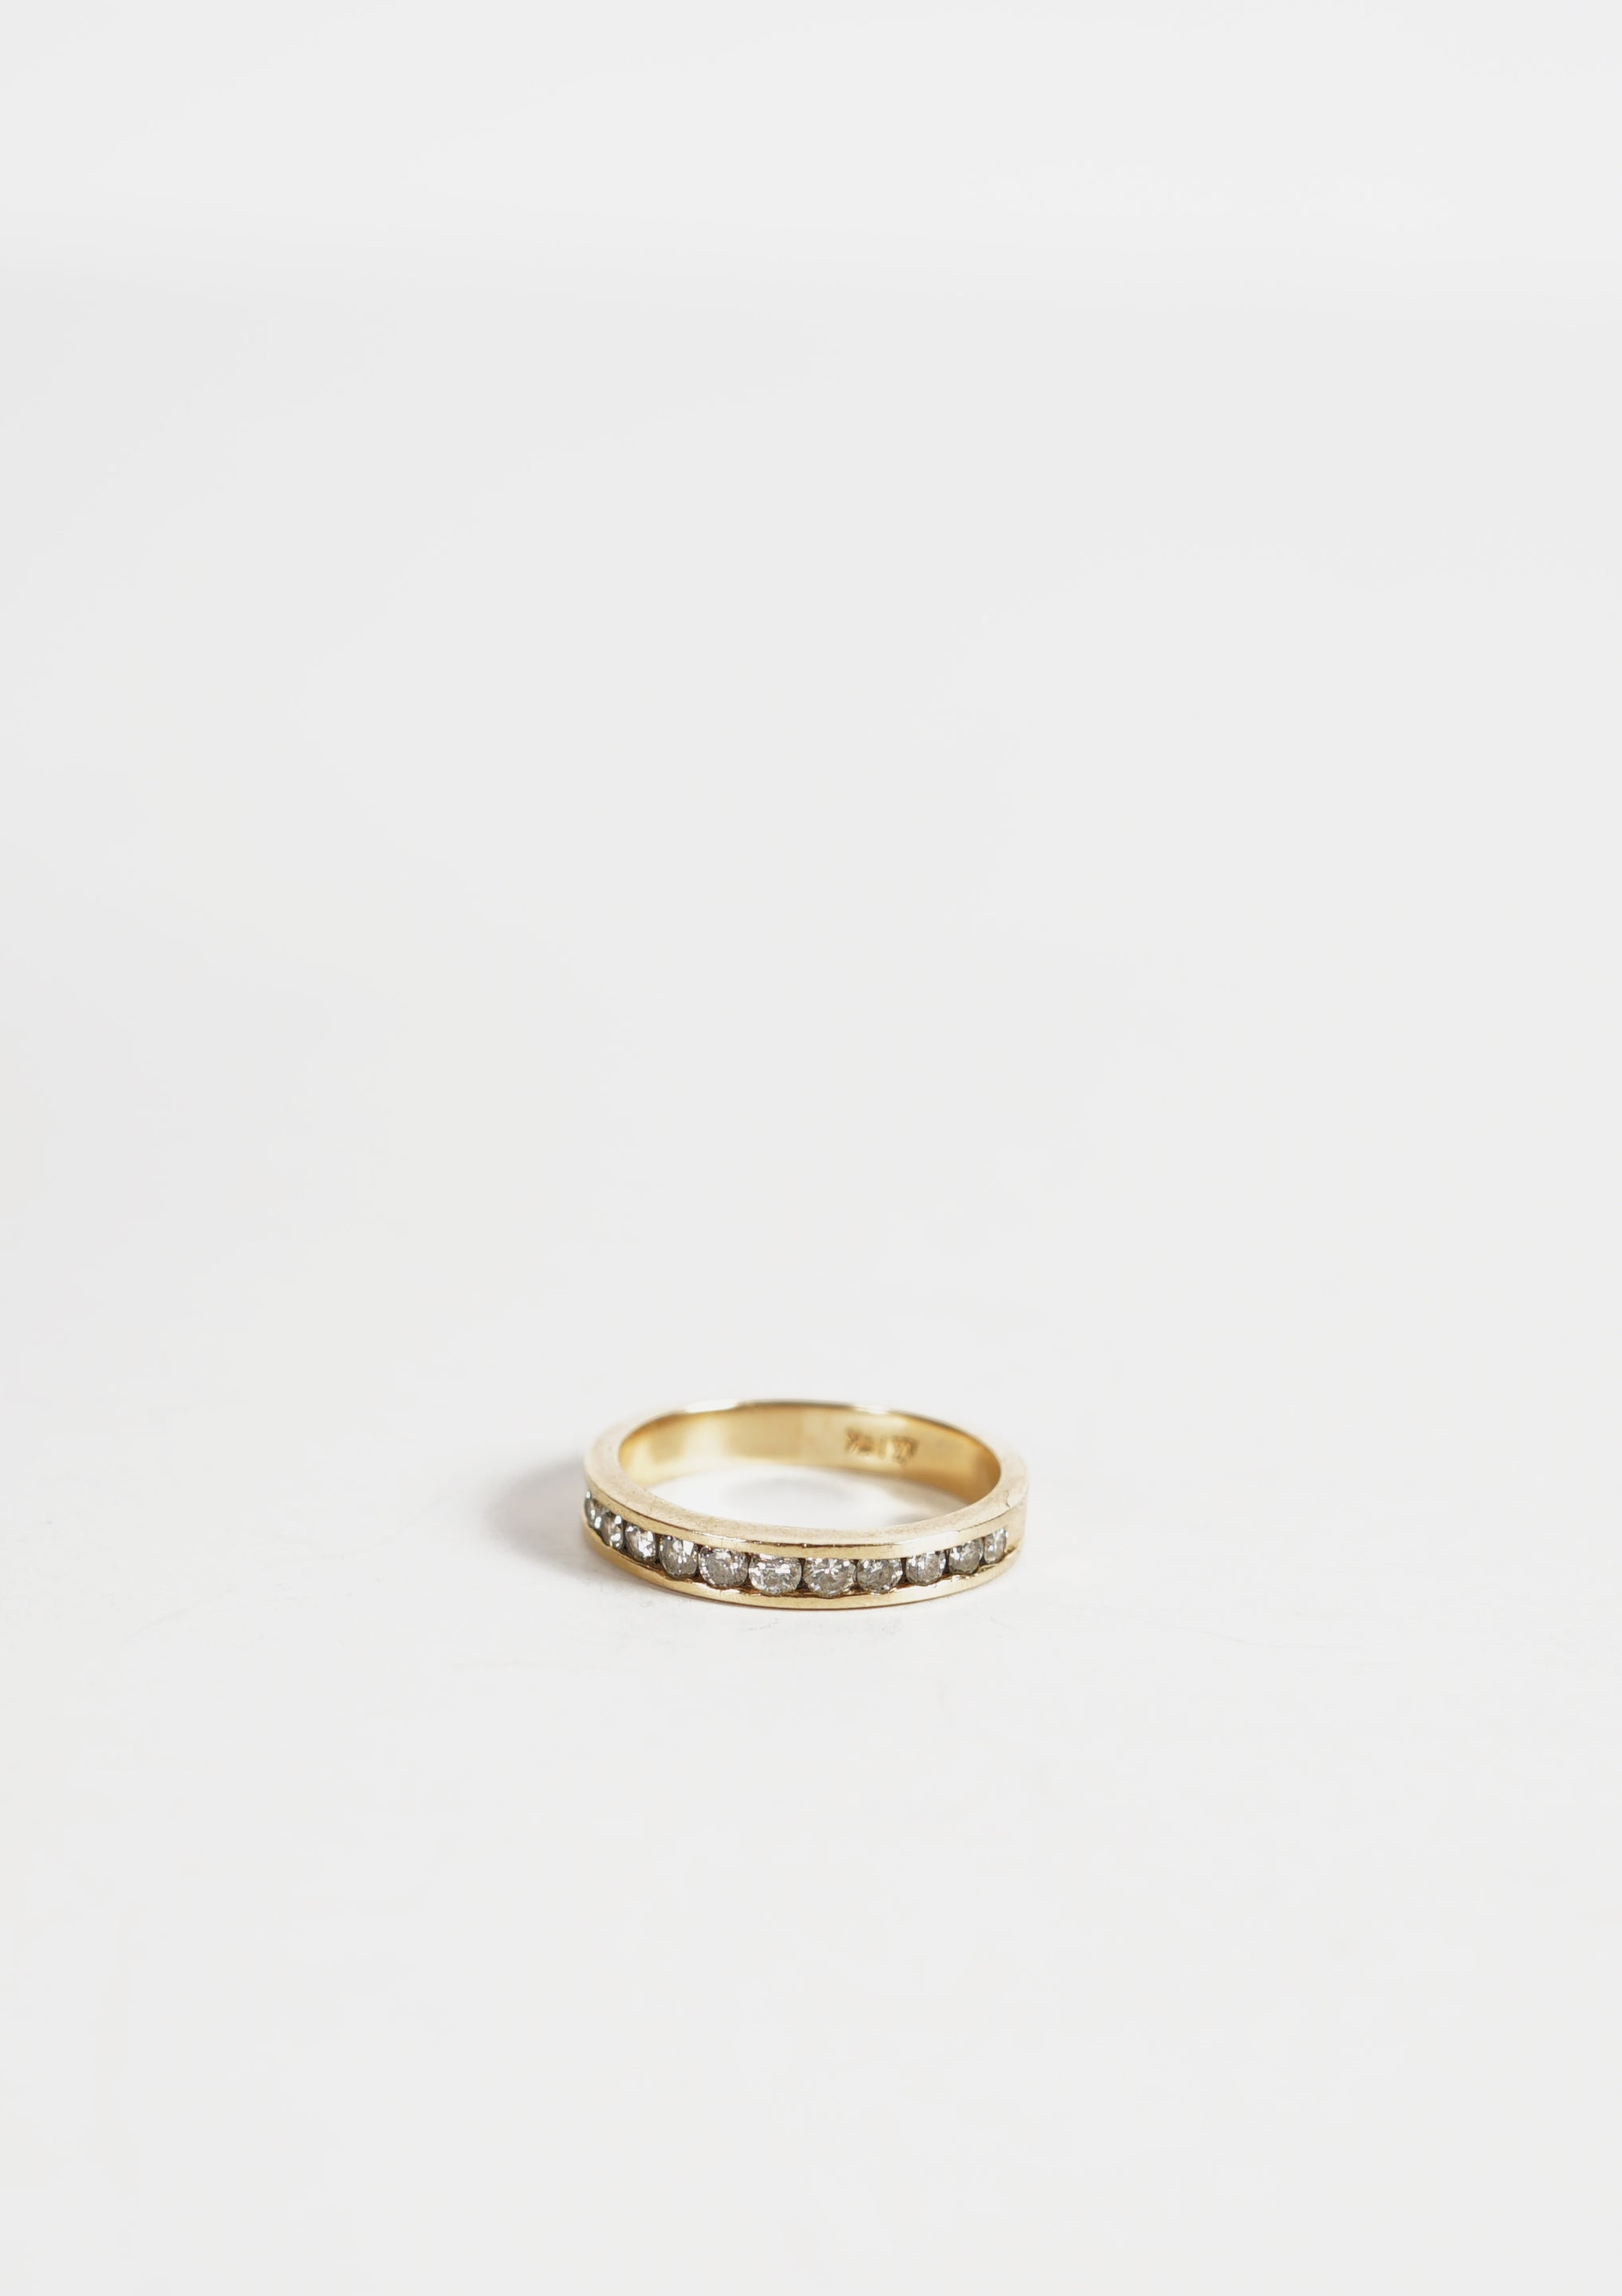 14k Gold Ring / 2mm